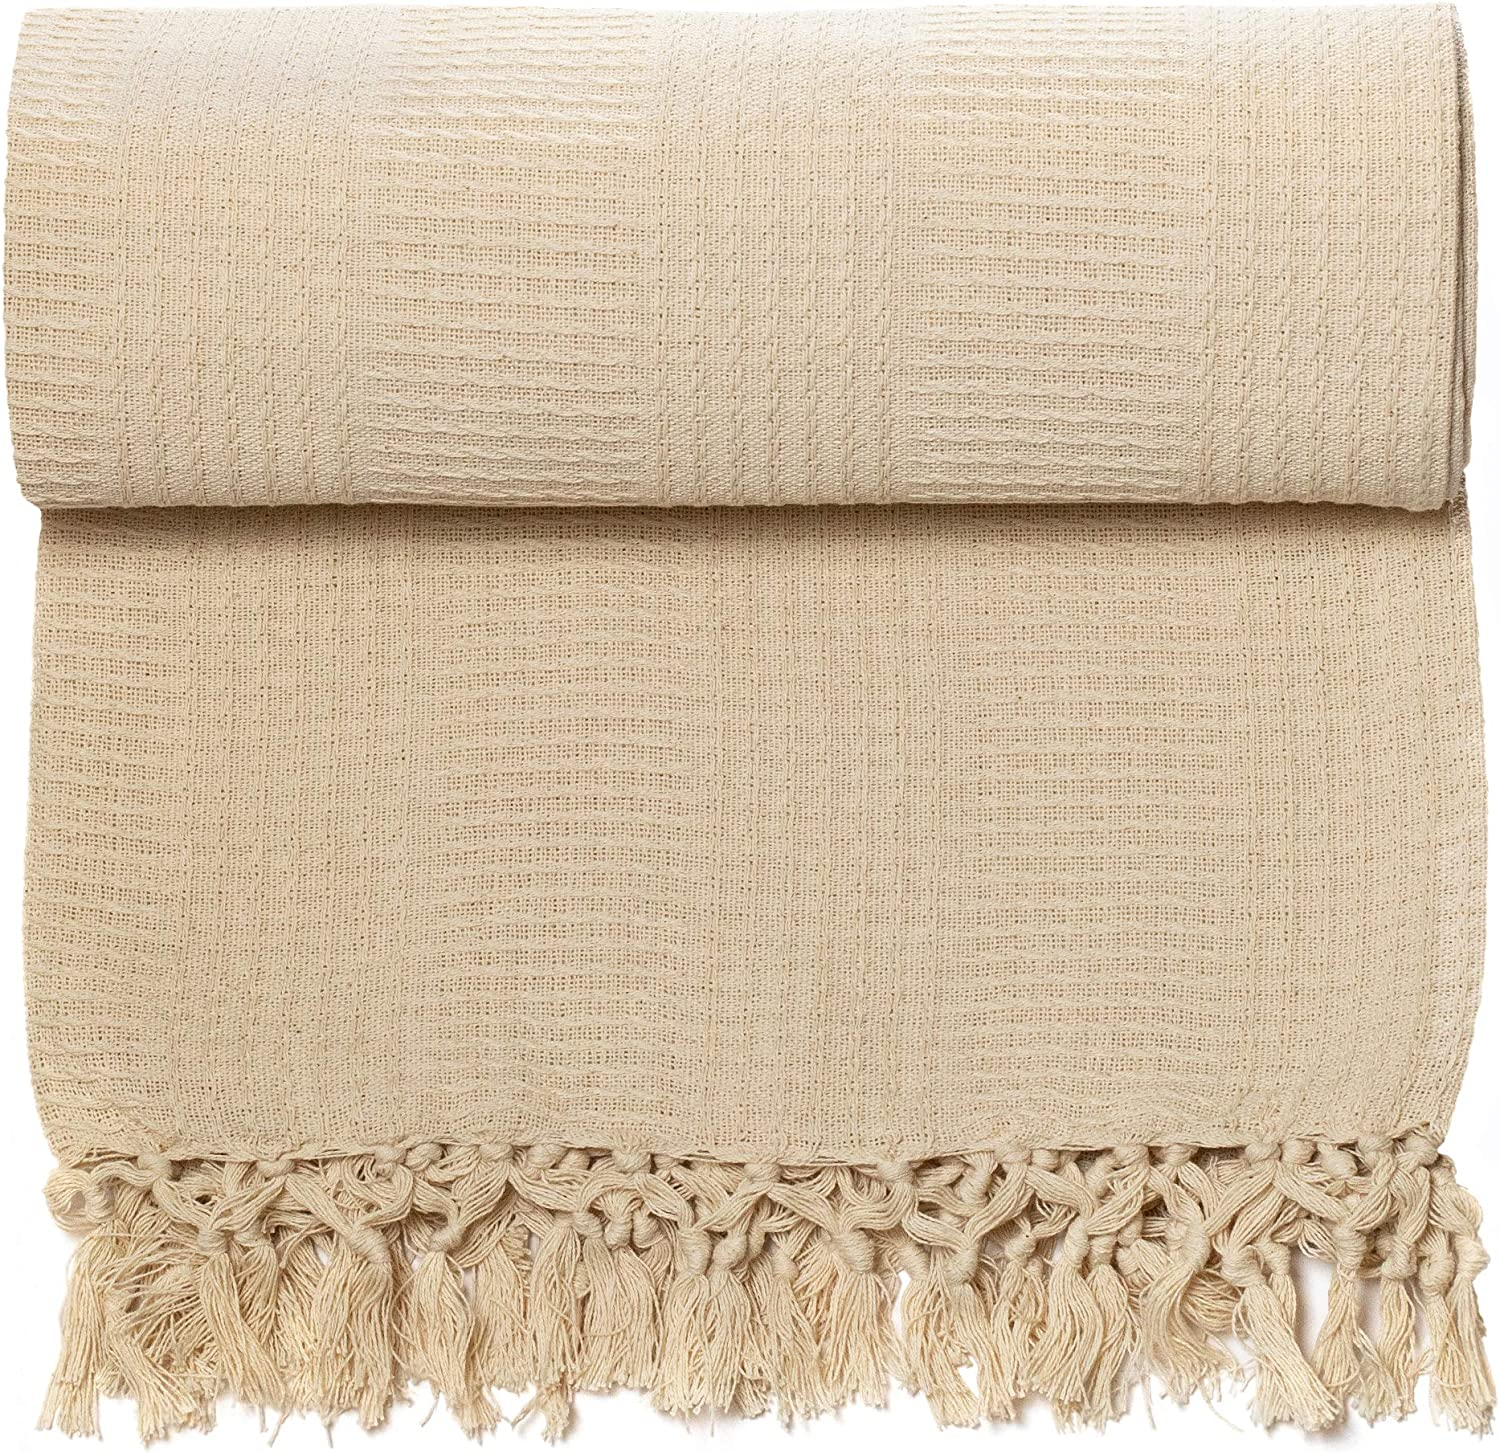 Organic Cotton Throw Blanket by Whisper Organics - G.O.T.S. Certified (60x80, Natural)